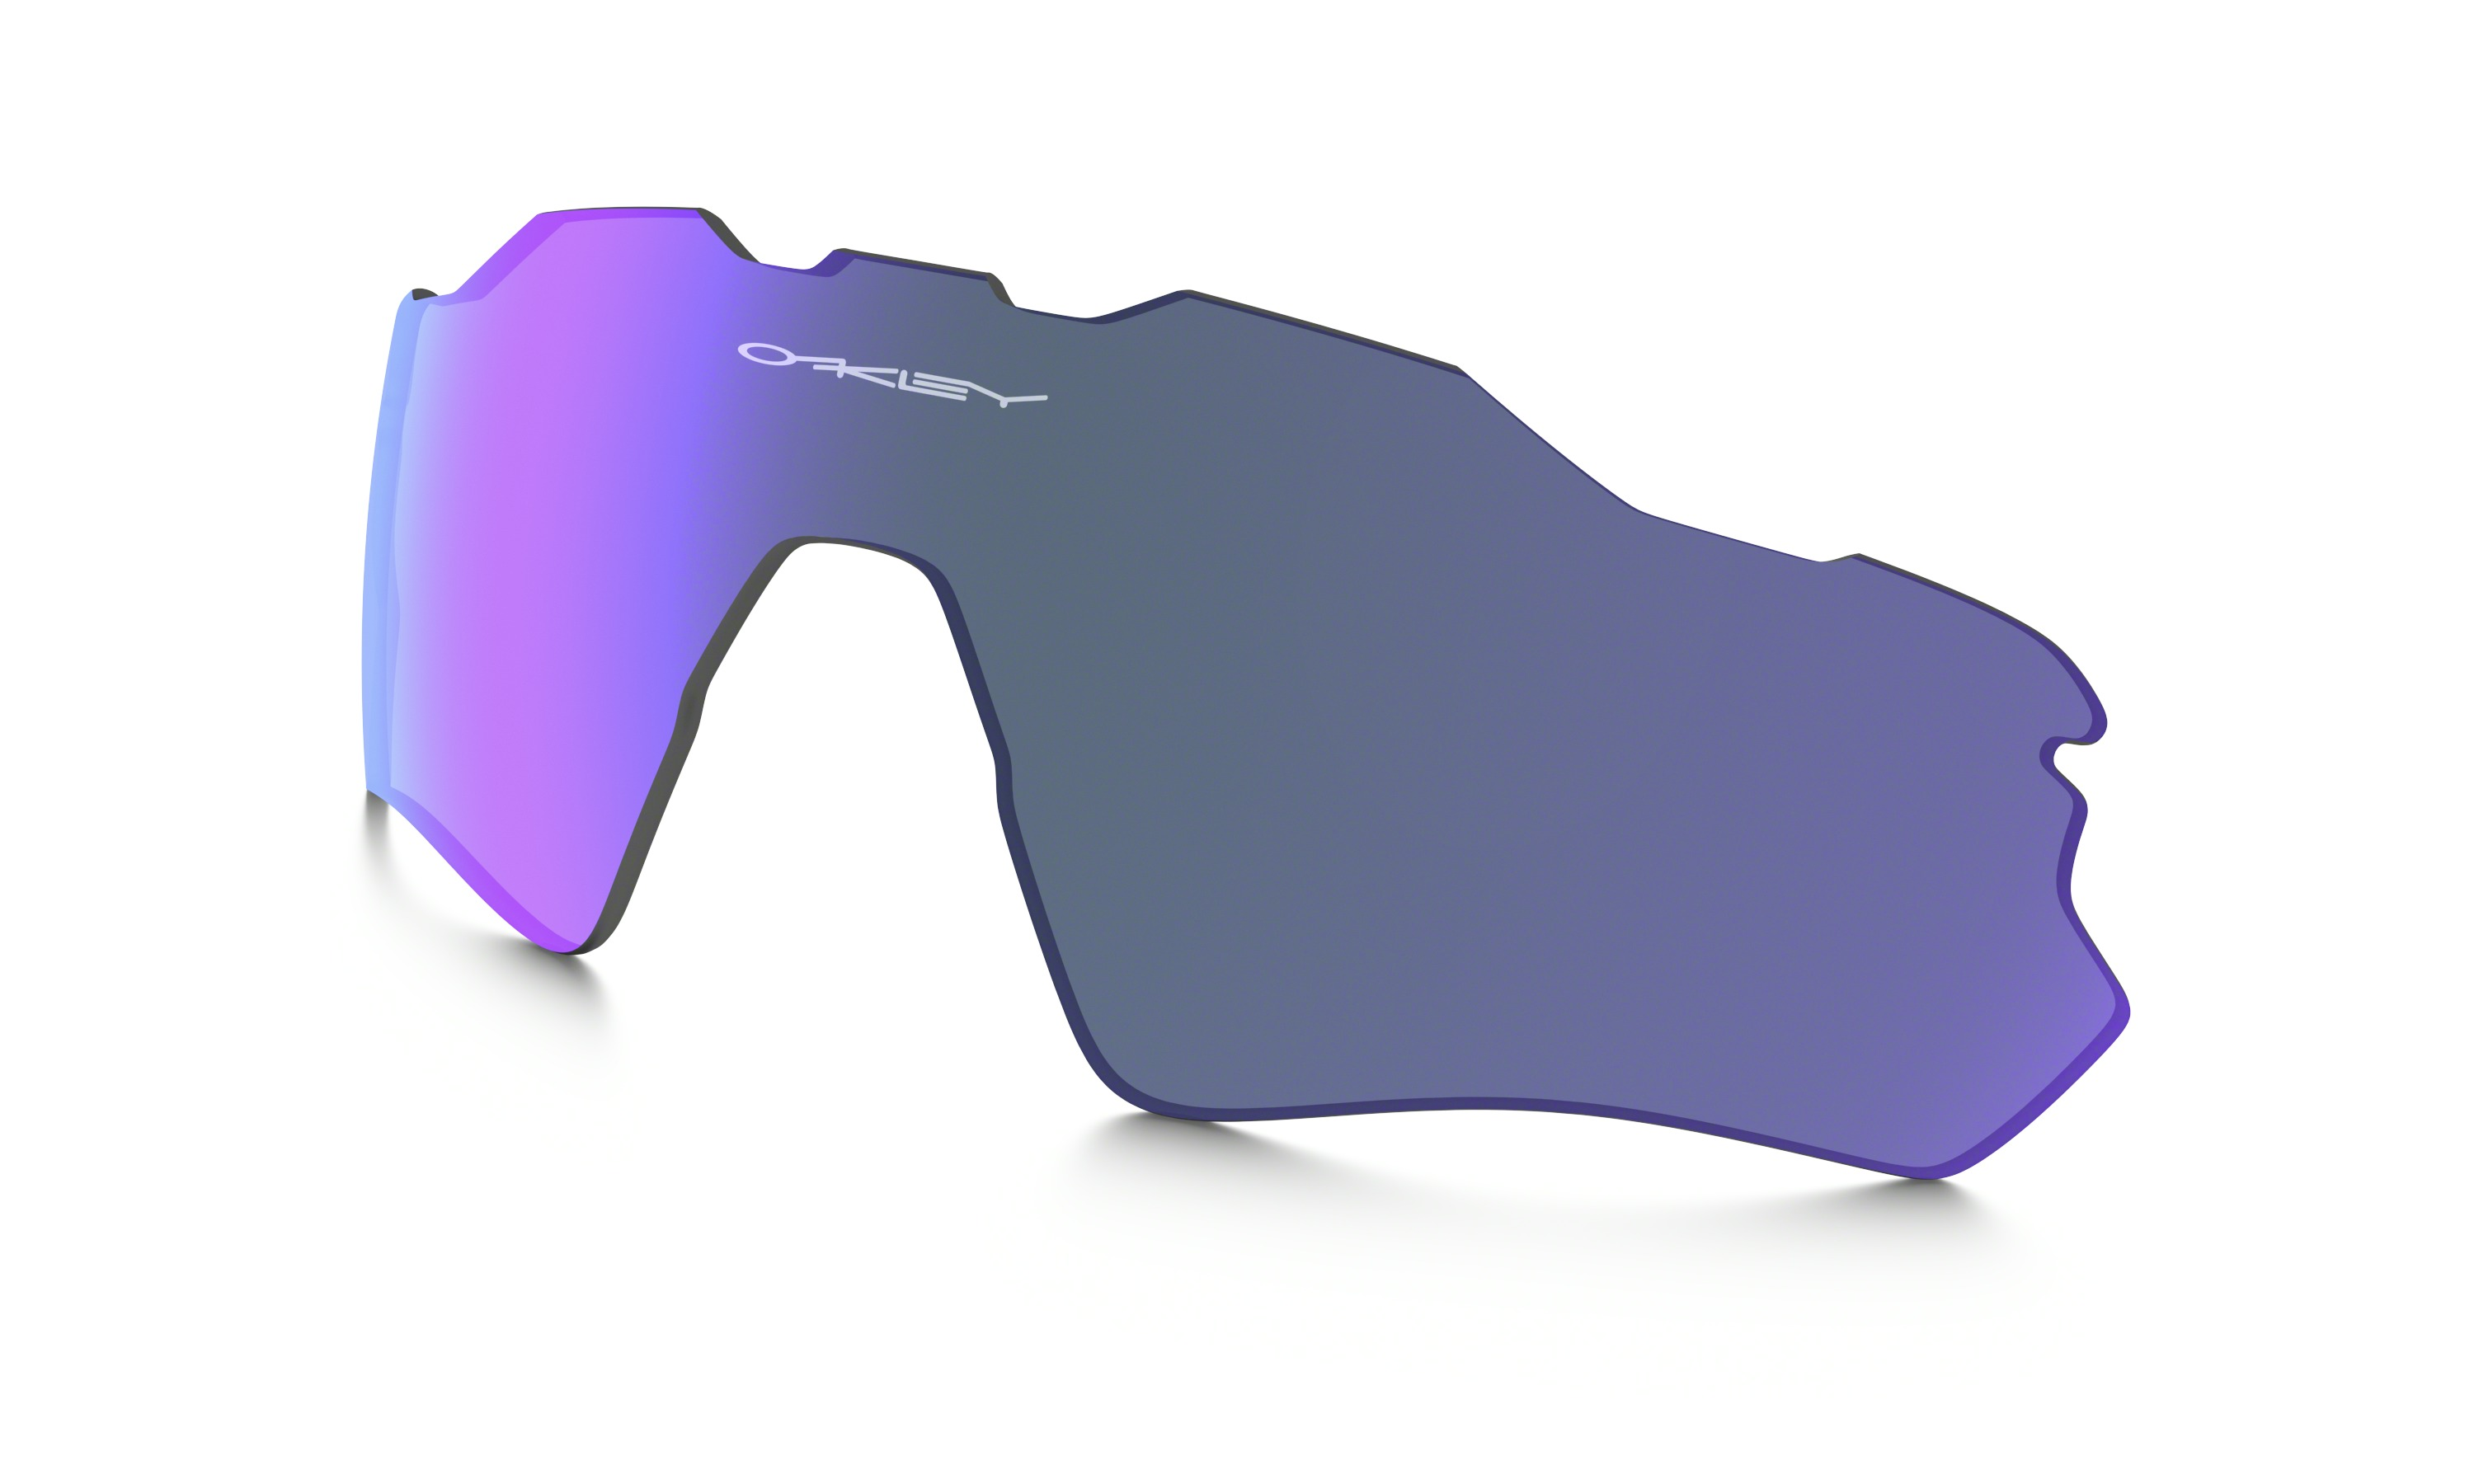 21514c981f Kit de lentes EV Oakley Radar Purple Iridium Path Ref: 101-353-018 ...